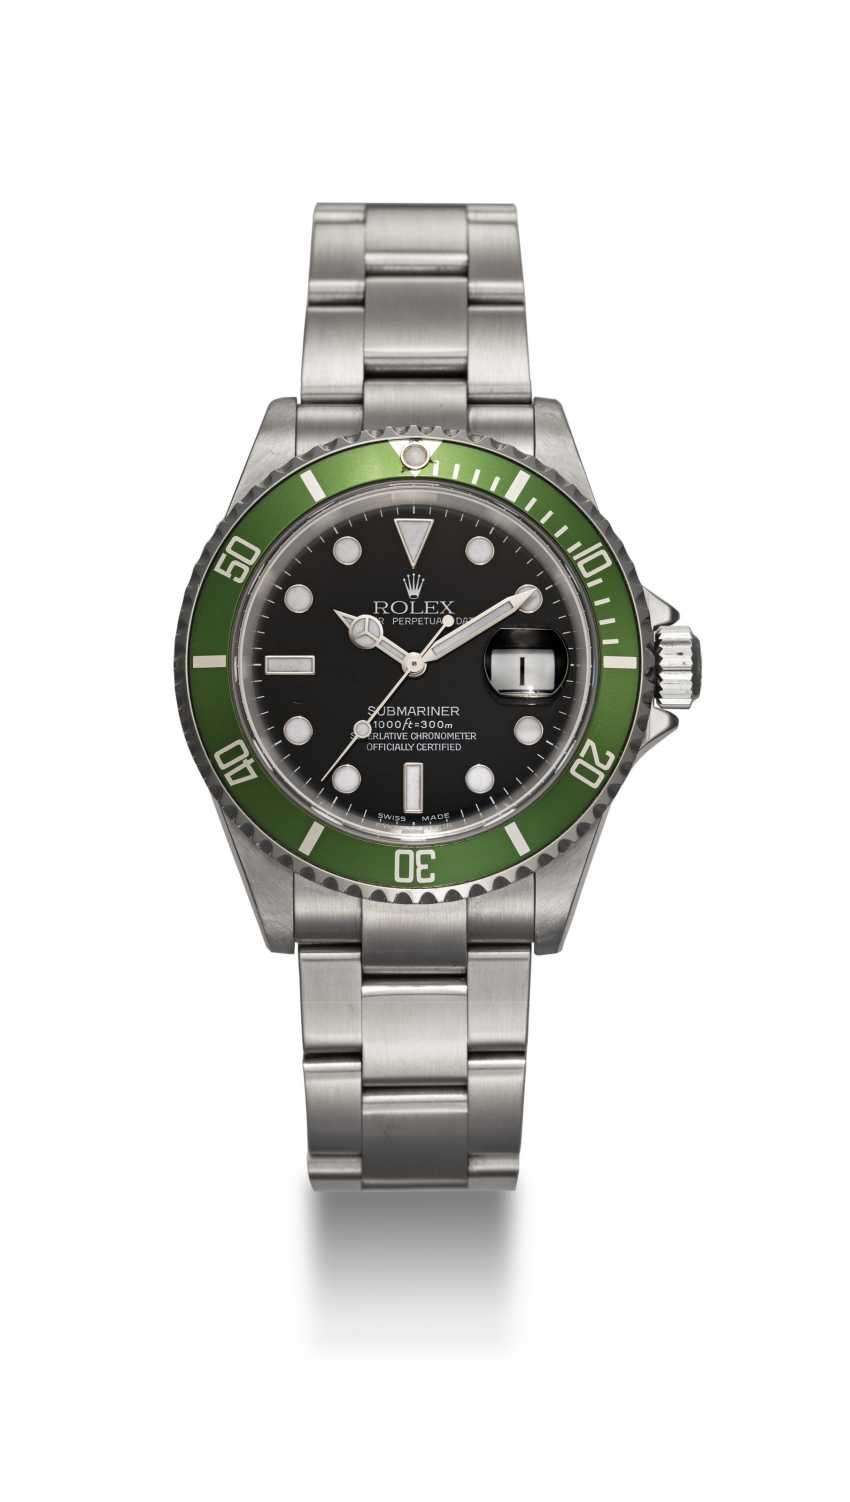 """ROLEX, A STAINLESS STEEL OYSTER PERPETUAL SUBMARINER """"FLAT FOUR"""", REF. 16610LV - photo 3"""